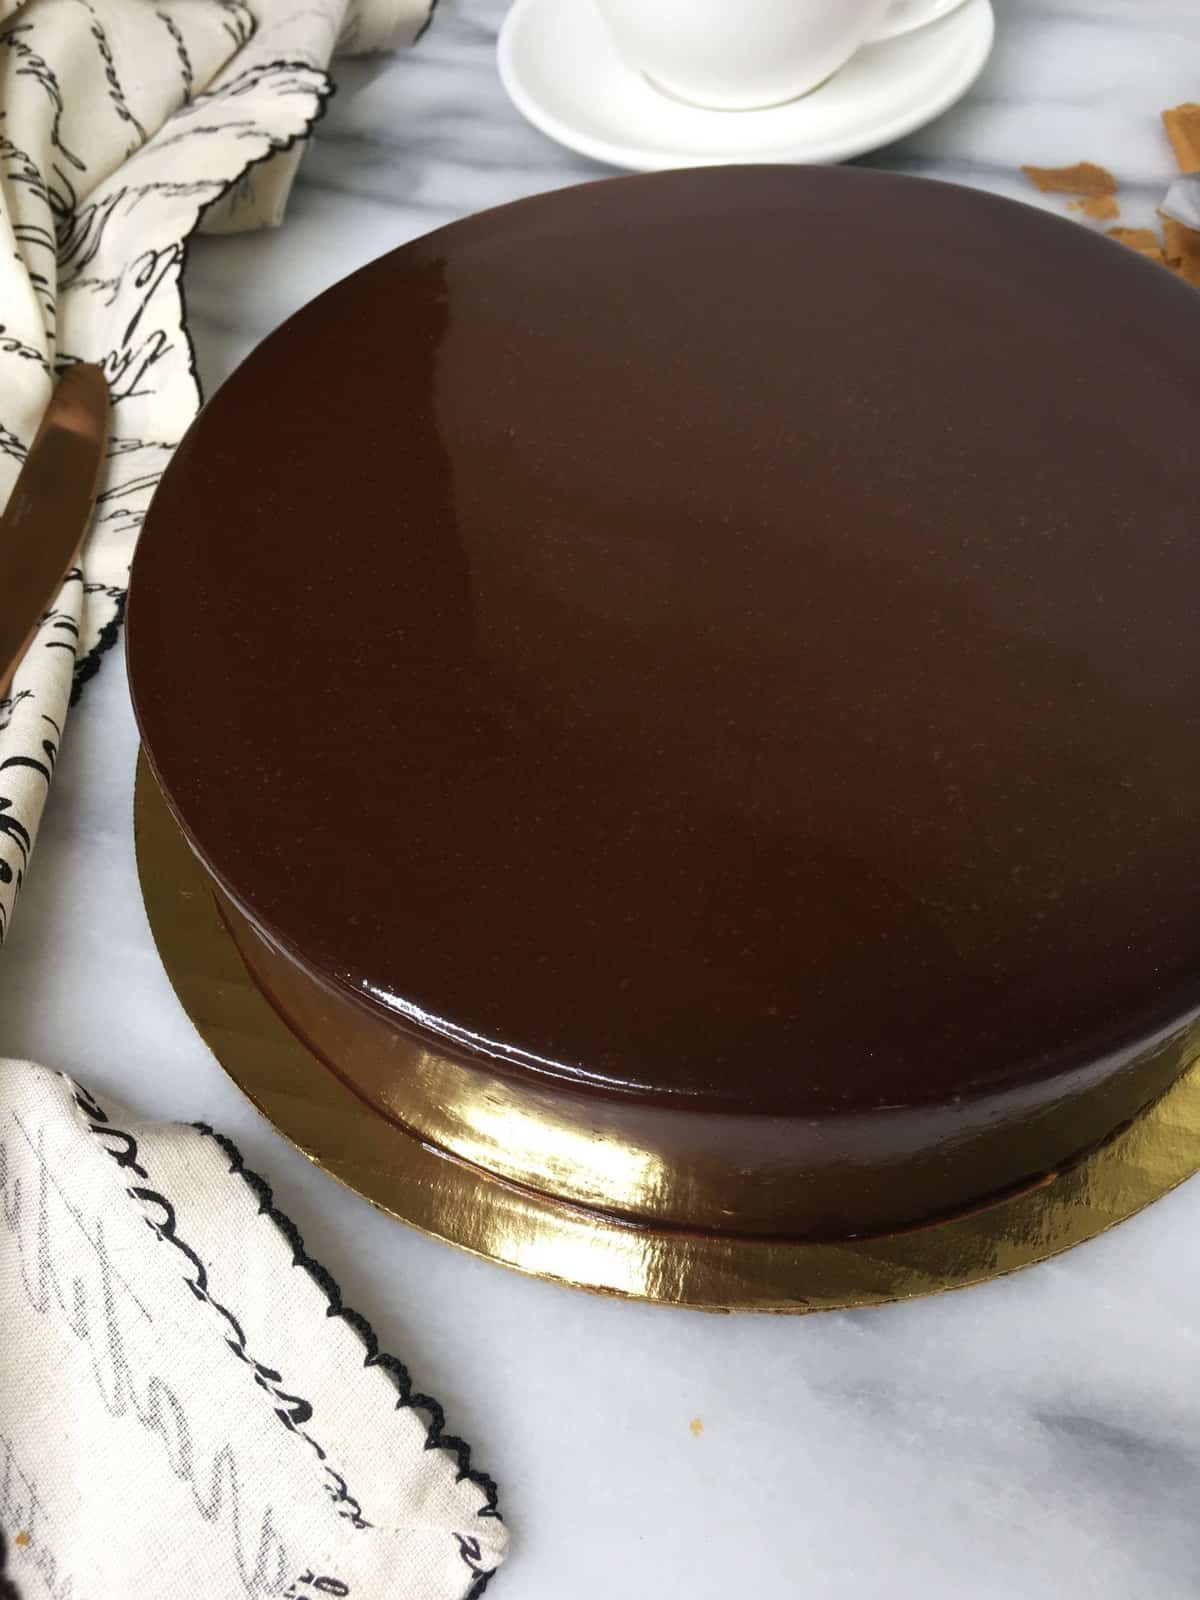 Glazed Royal chocolate cake with a kitchen towel, a knife and a white cup: Overhead view